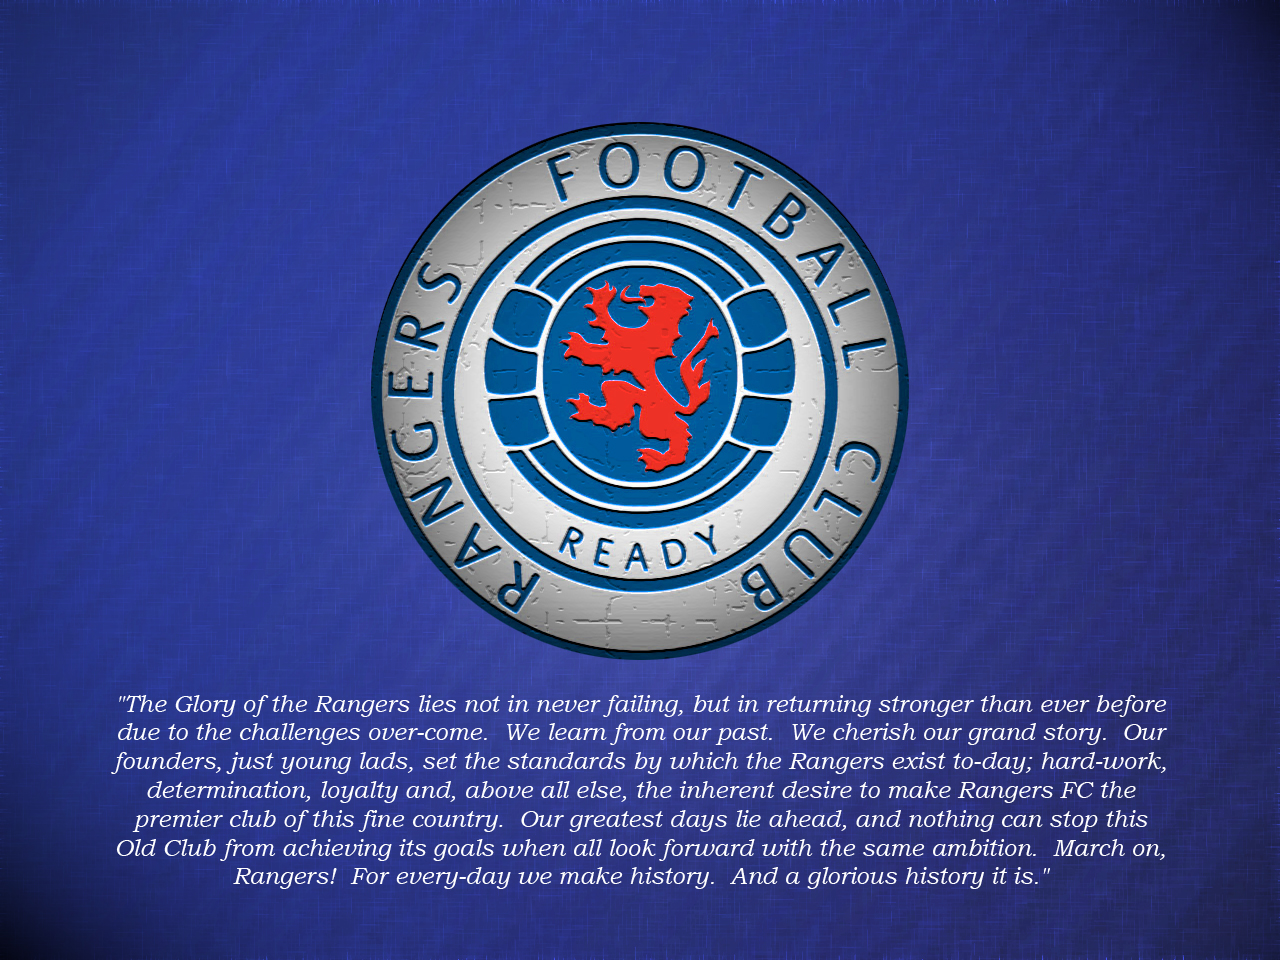 glasgow rangers wallpaper Football Pictures and Photos 1280x960